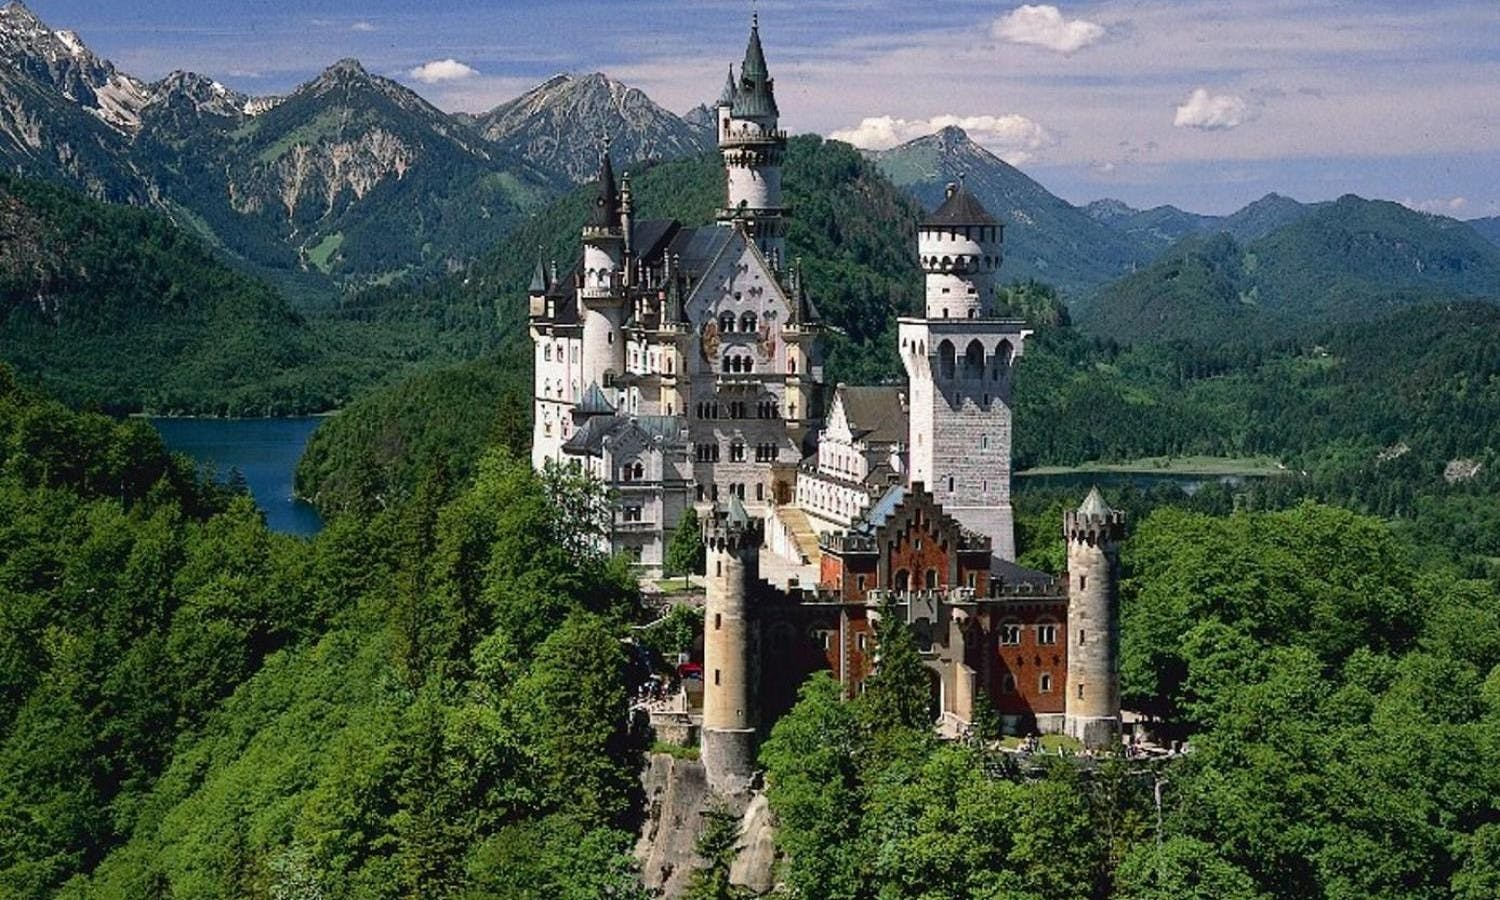 Neuschwanstein, Linderhof and Oberammergau excursion from Munich